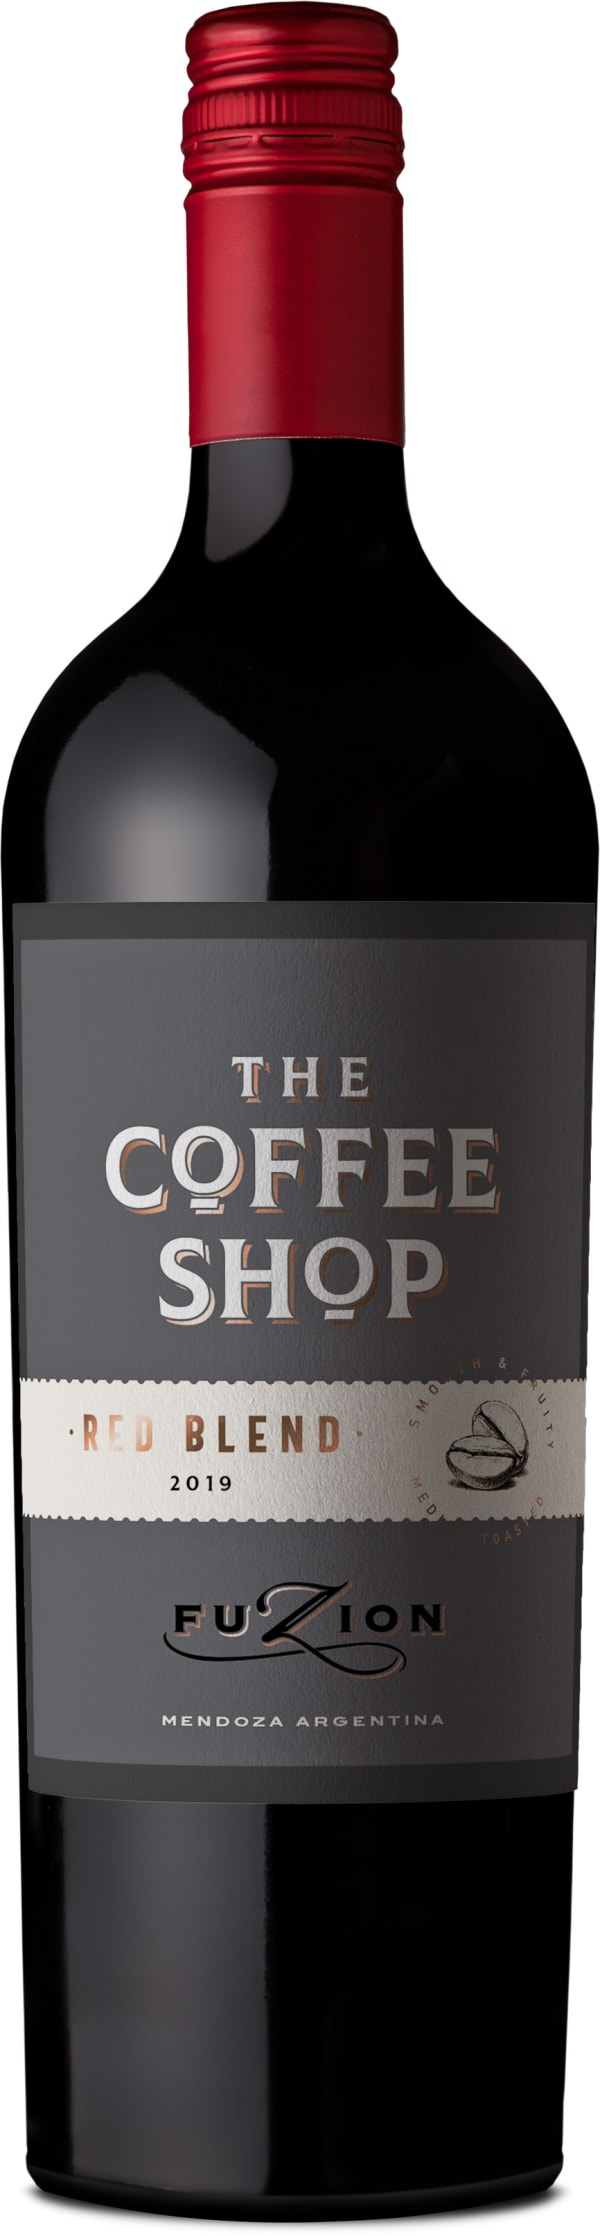 Fuzion The Coffee Shop Red Blend 2016